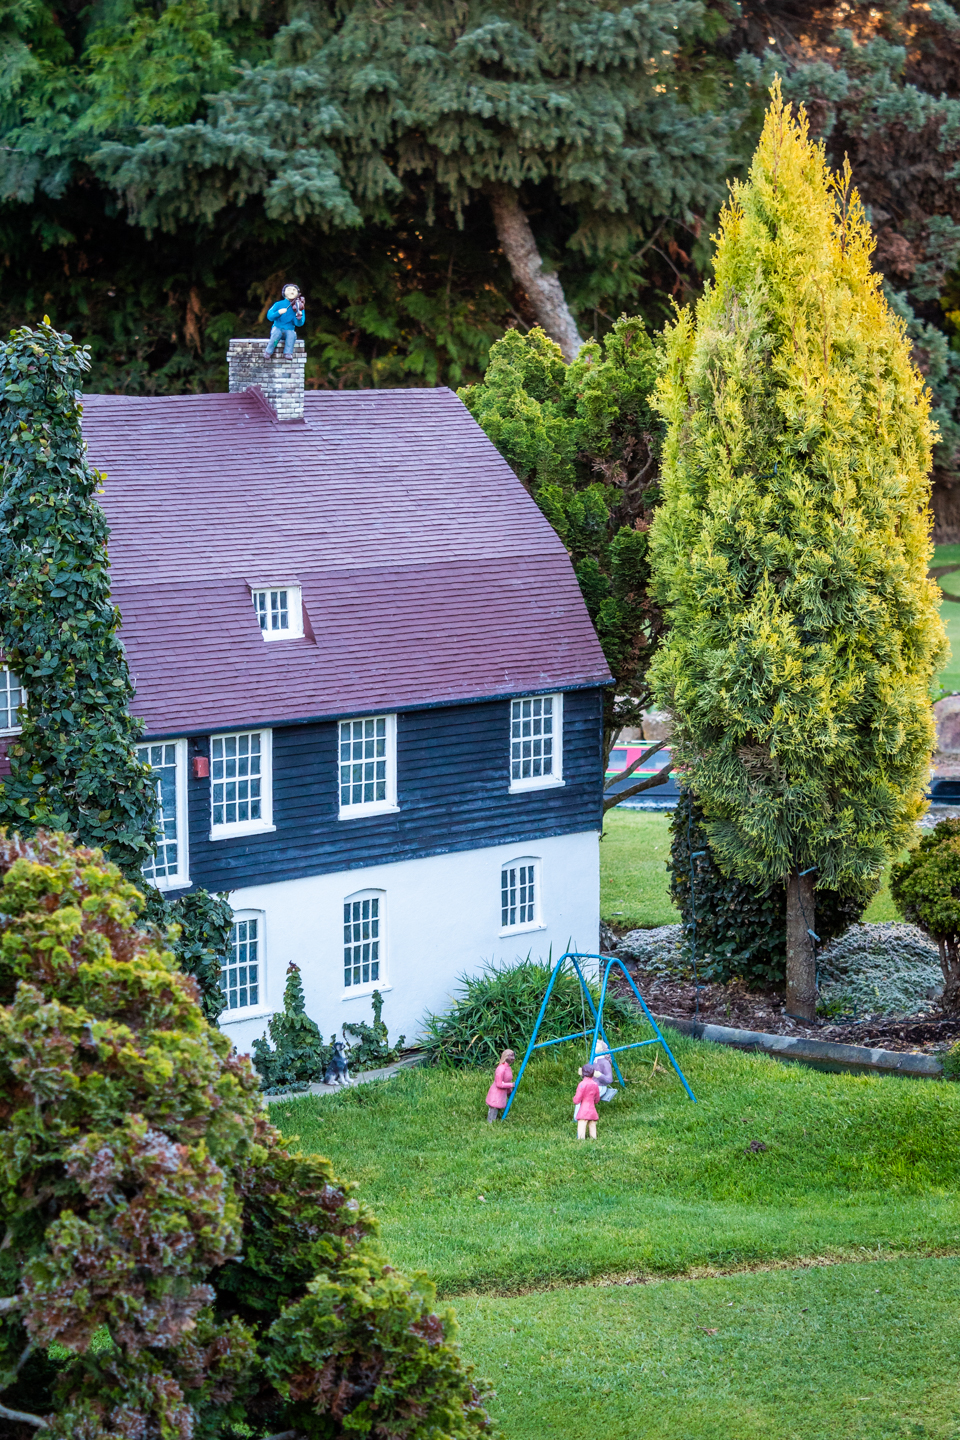 CRH_2018_COCKINGTON_MINIATURE_VILLAGE_3448.jpg